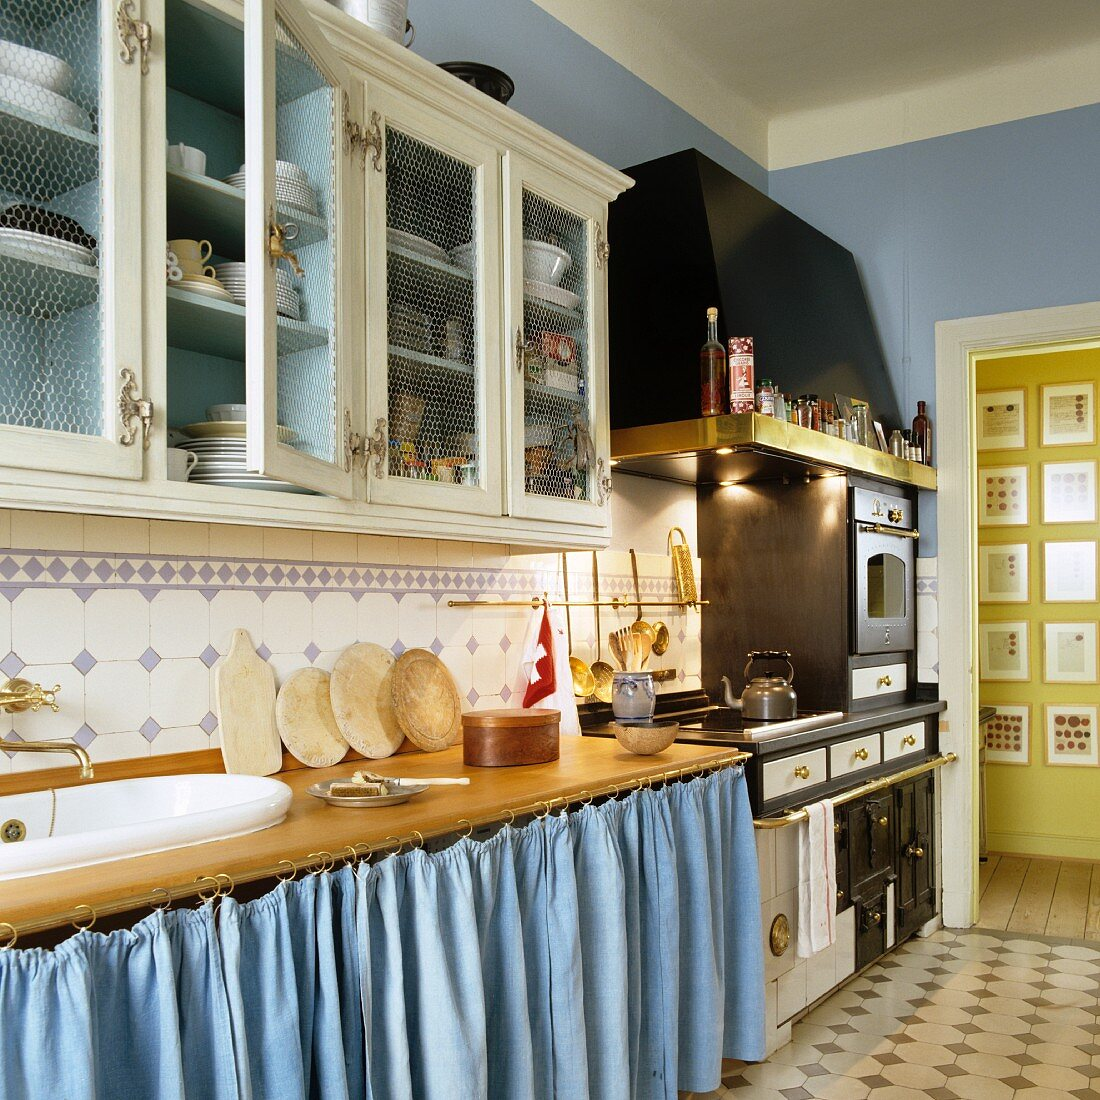 A kitchen in a country house with blue walls